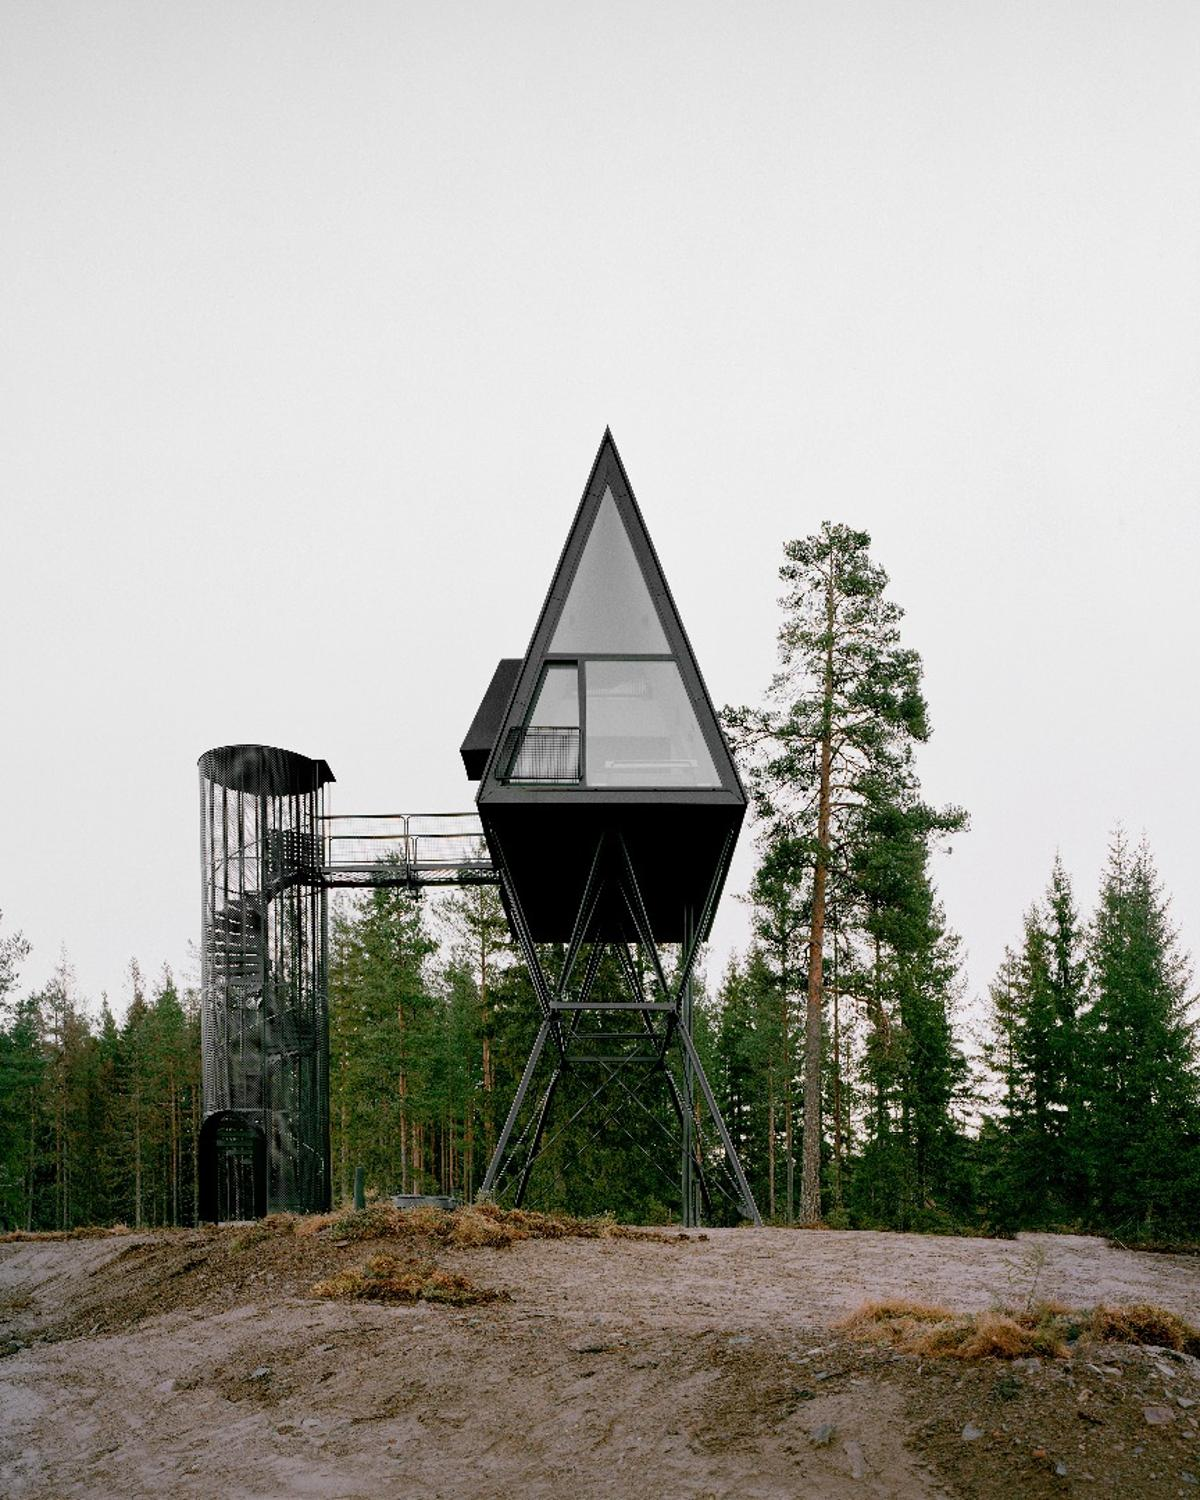 ThePan Treetop Cabins are part-inspired by theMoomins and are raised 8 m (26 ft) above the ground